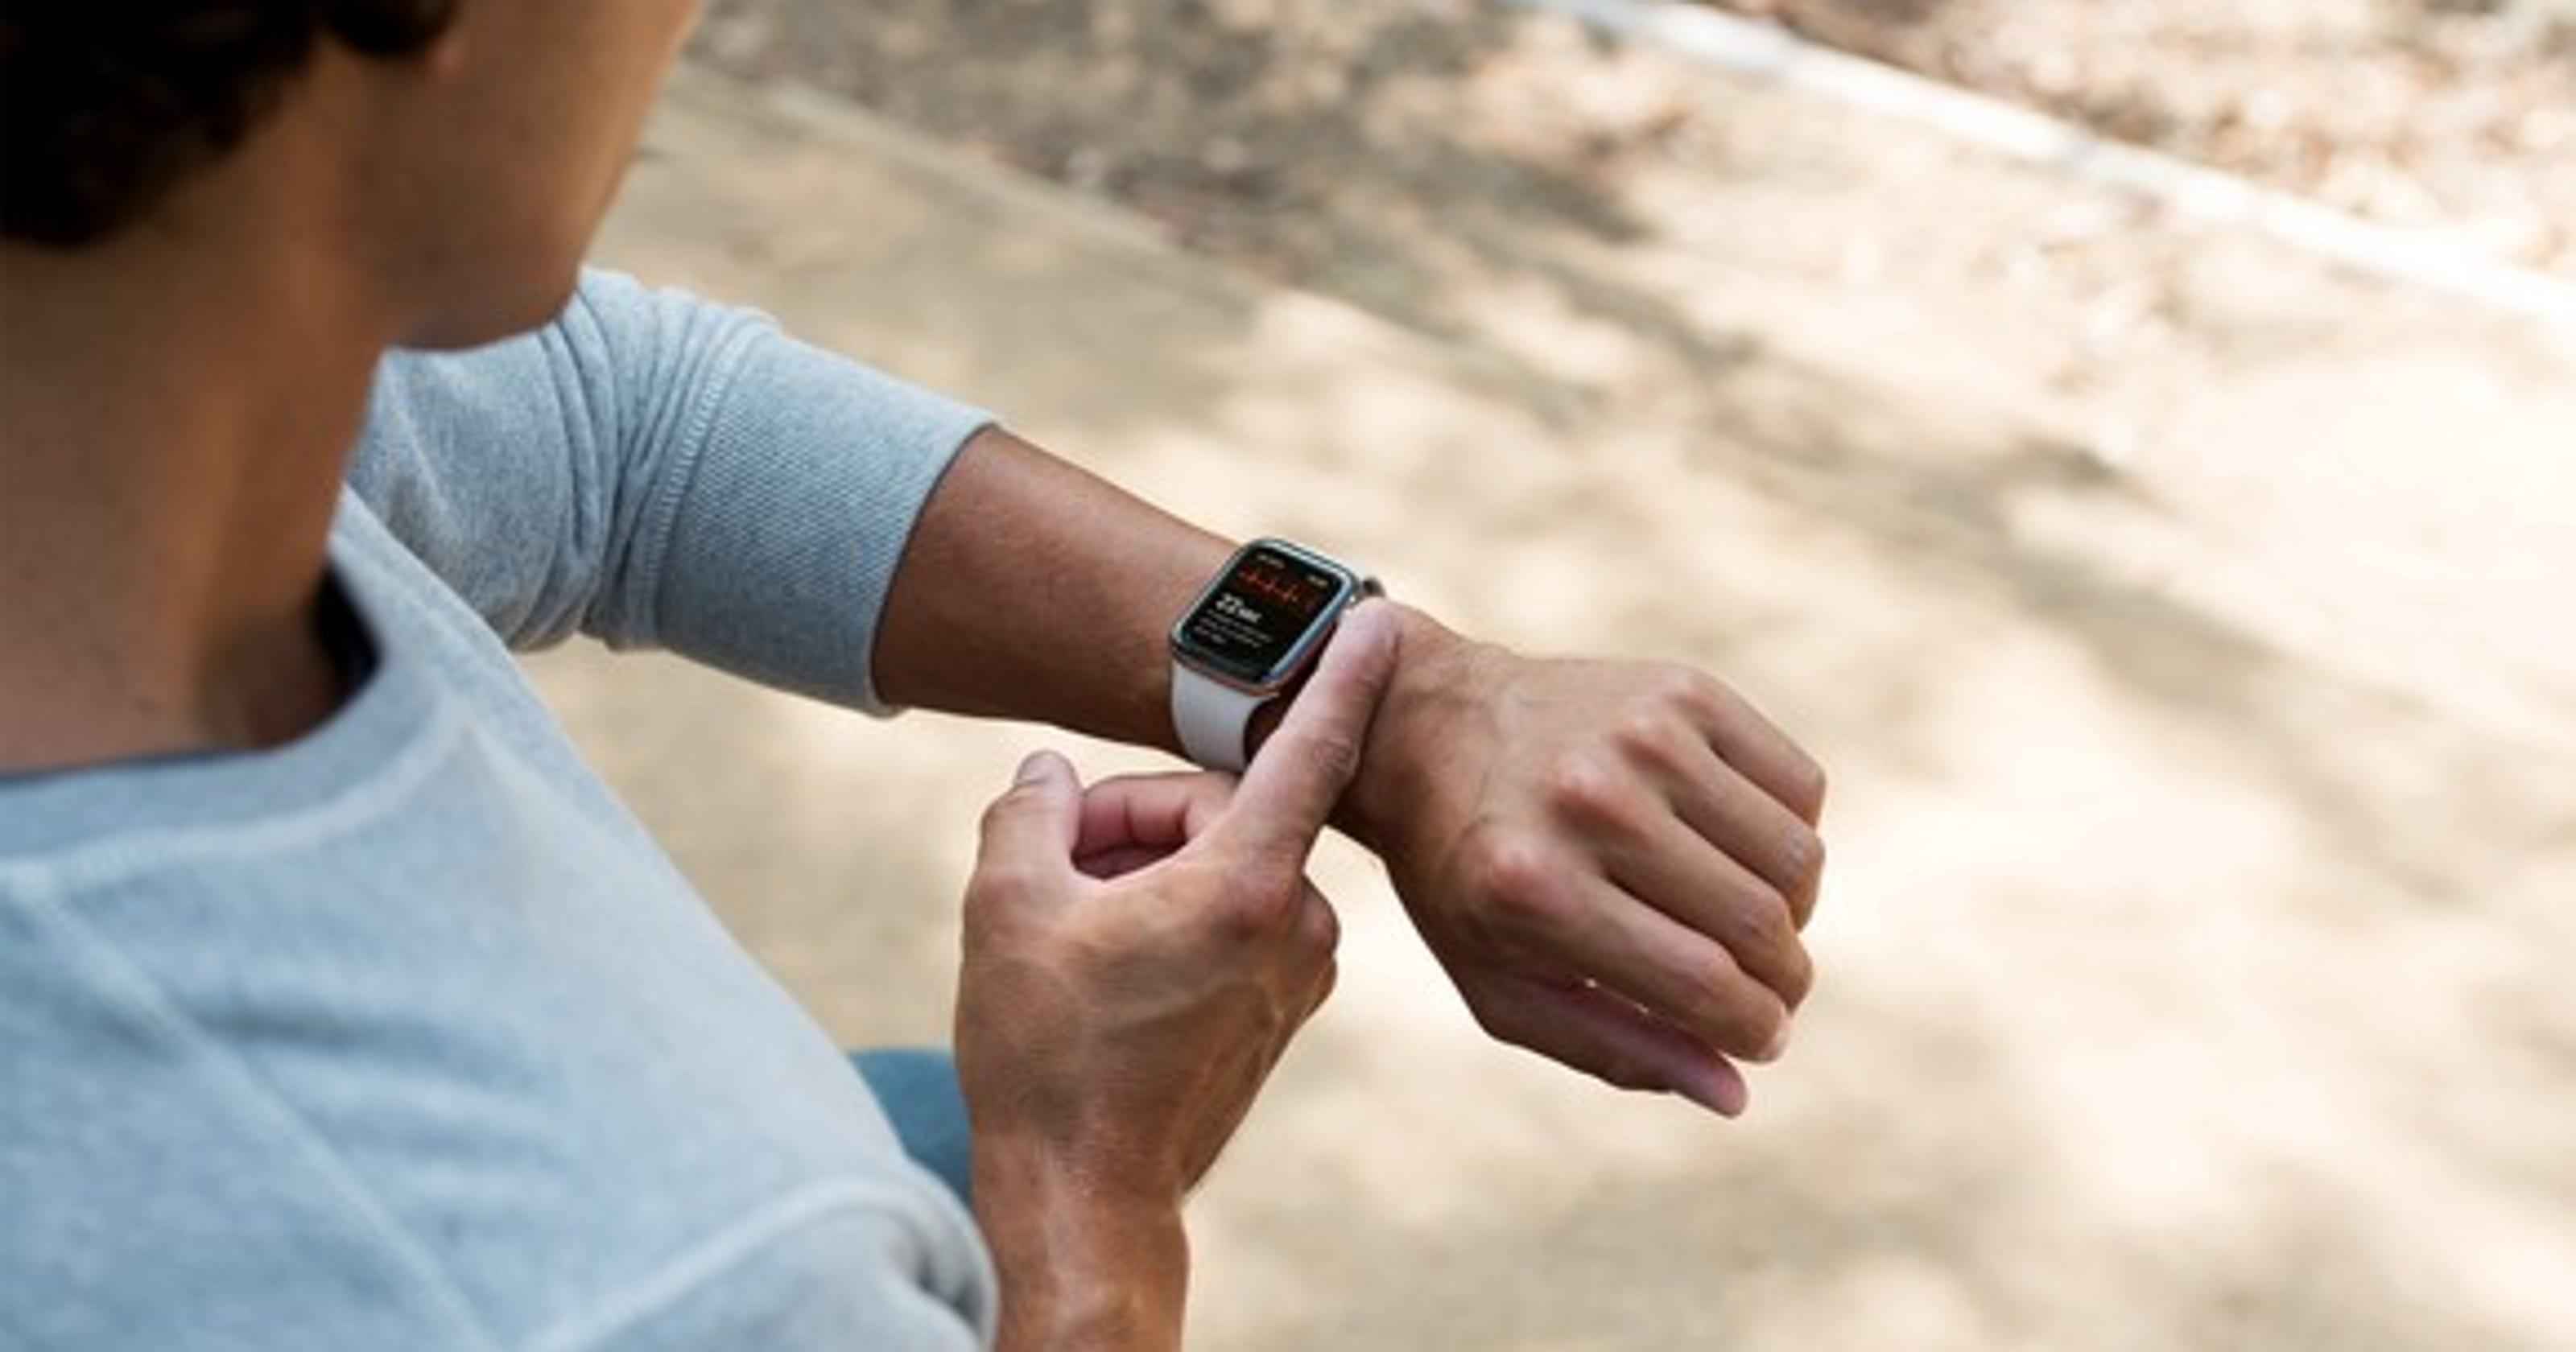 Can smartwatches literally save lives? Some users say 'yes'